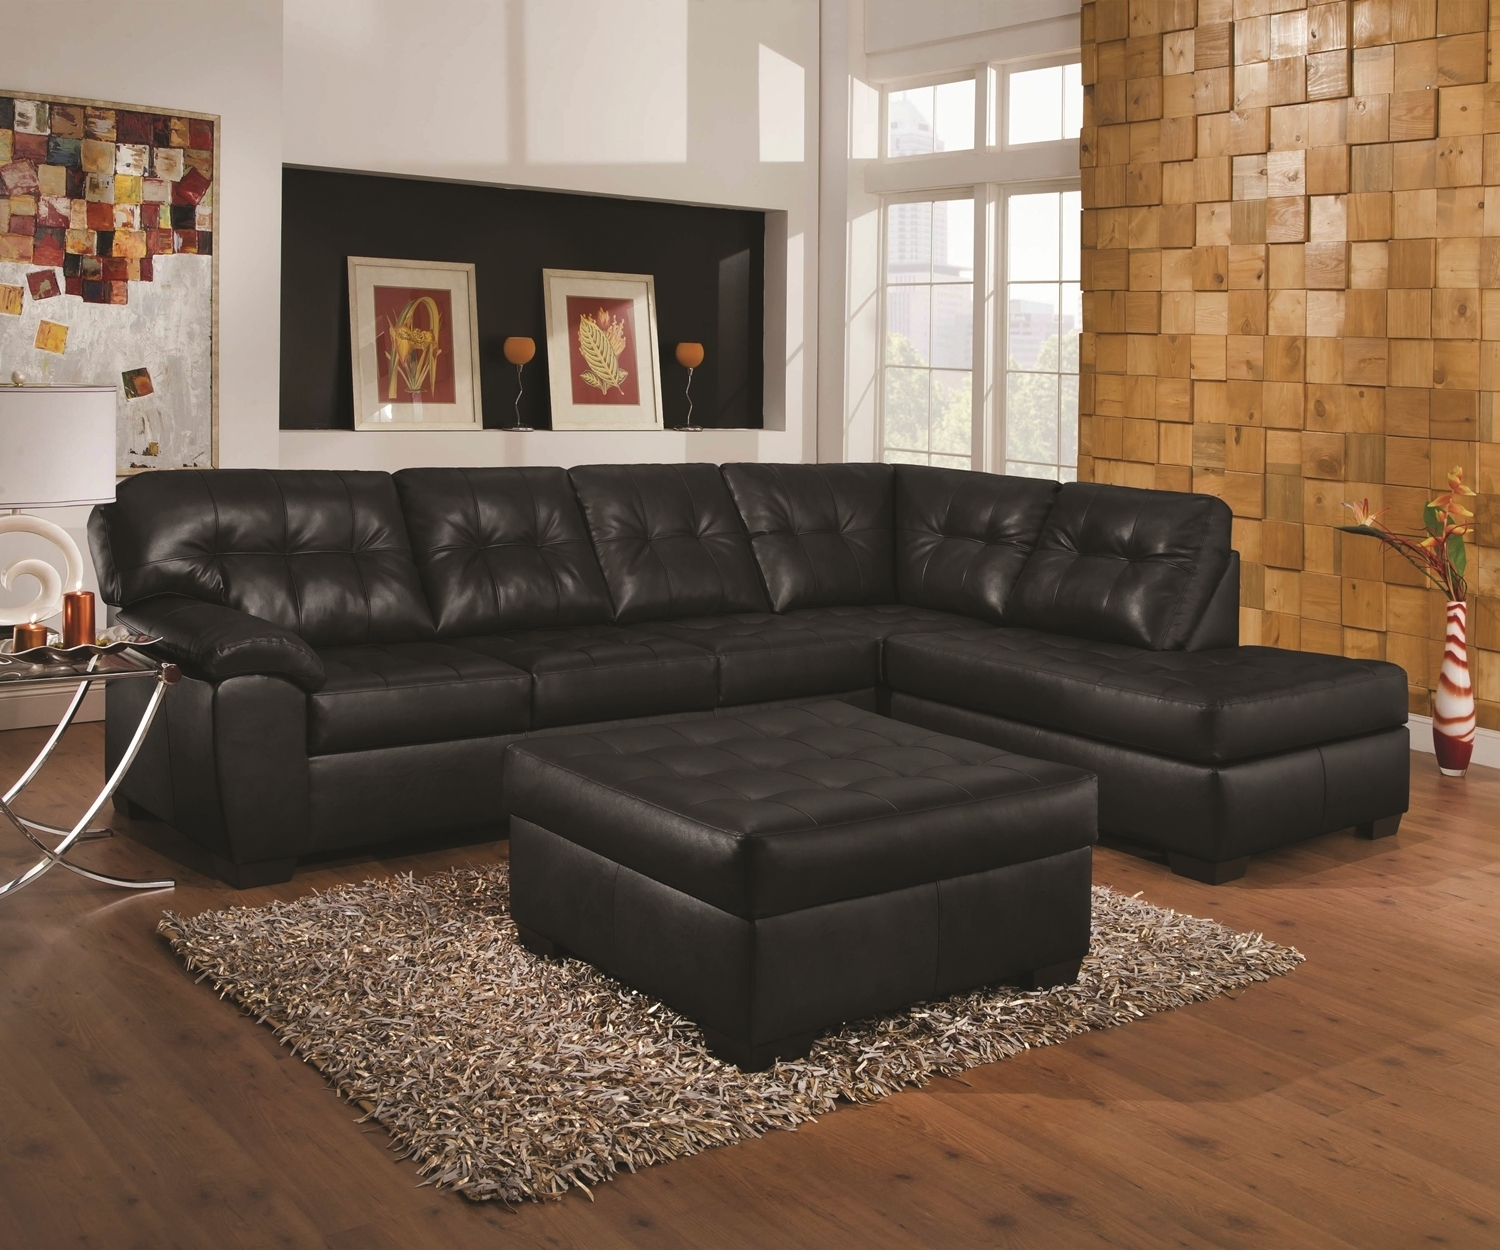 9569 Soho Onyx [9569 Soho Onyx] – $869 : All Things Delivered, Dfw With Evan 2 Piece Sectionals With Raf Chaise (Photo 6485 of 7746)